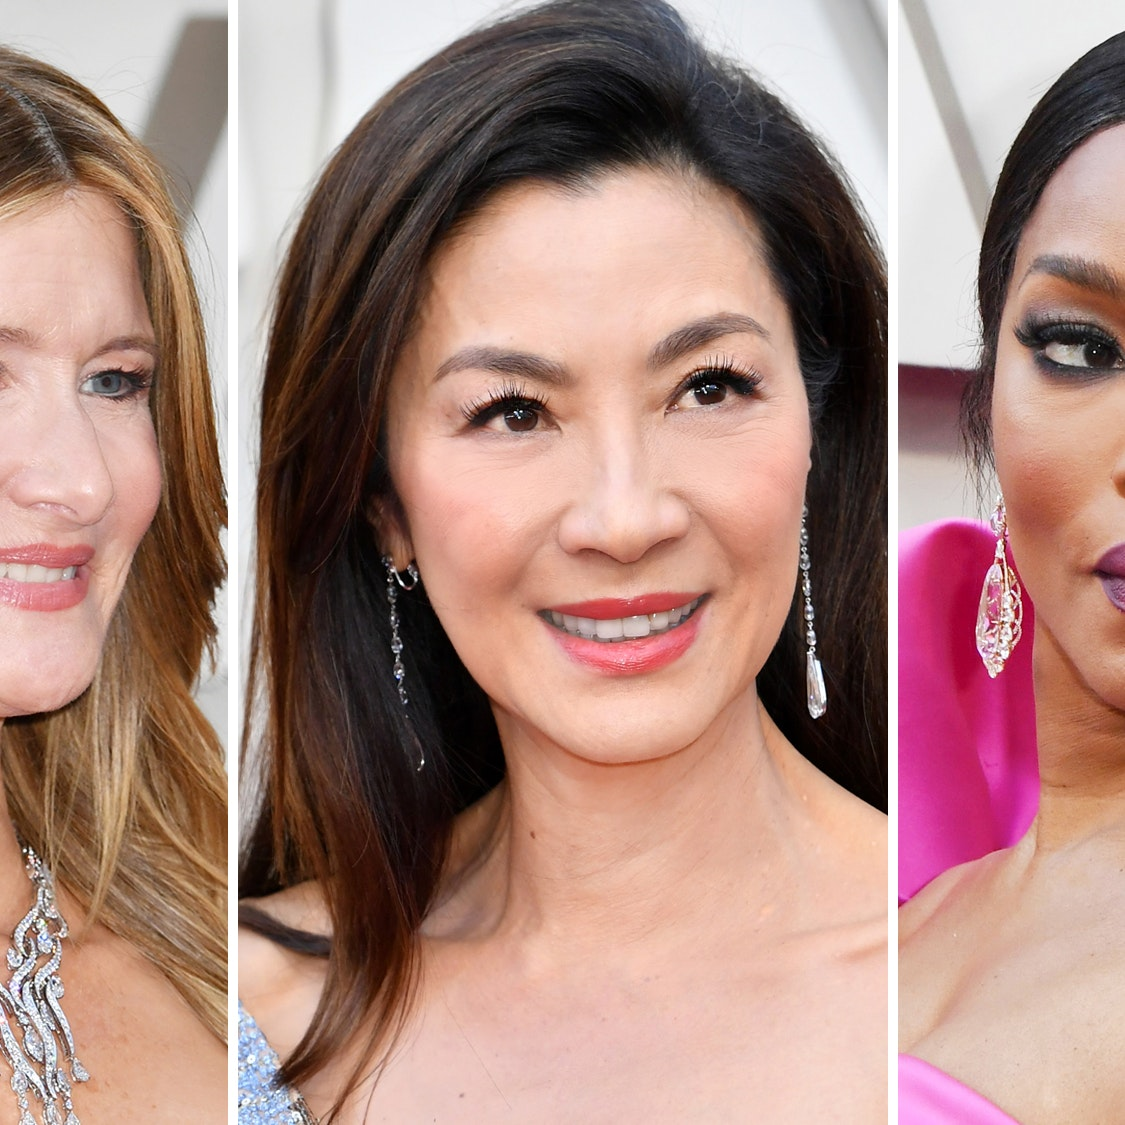 7 Actresses Over 50 That Ruled the 2019 Oscars Red Carpet